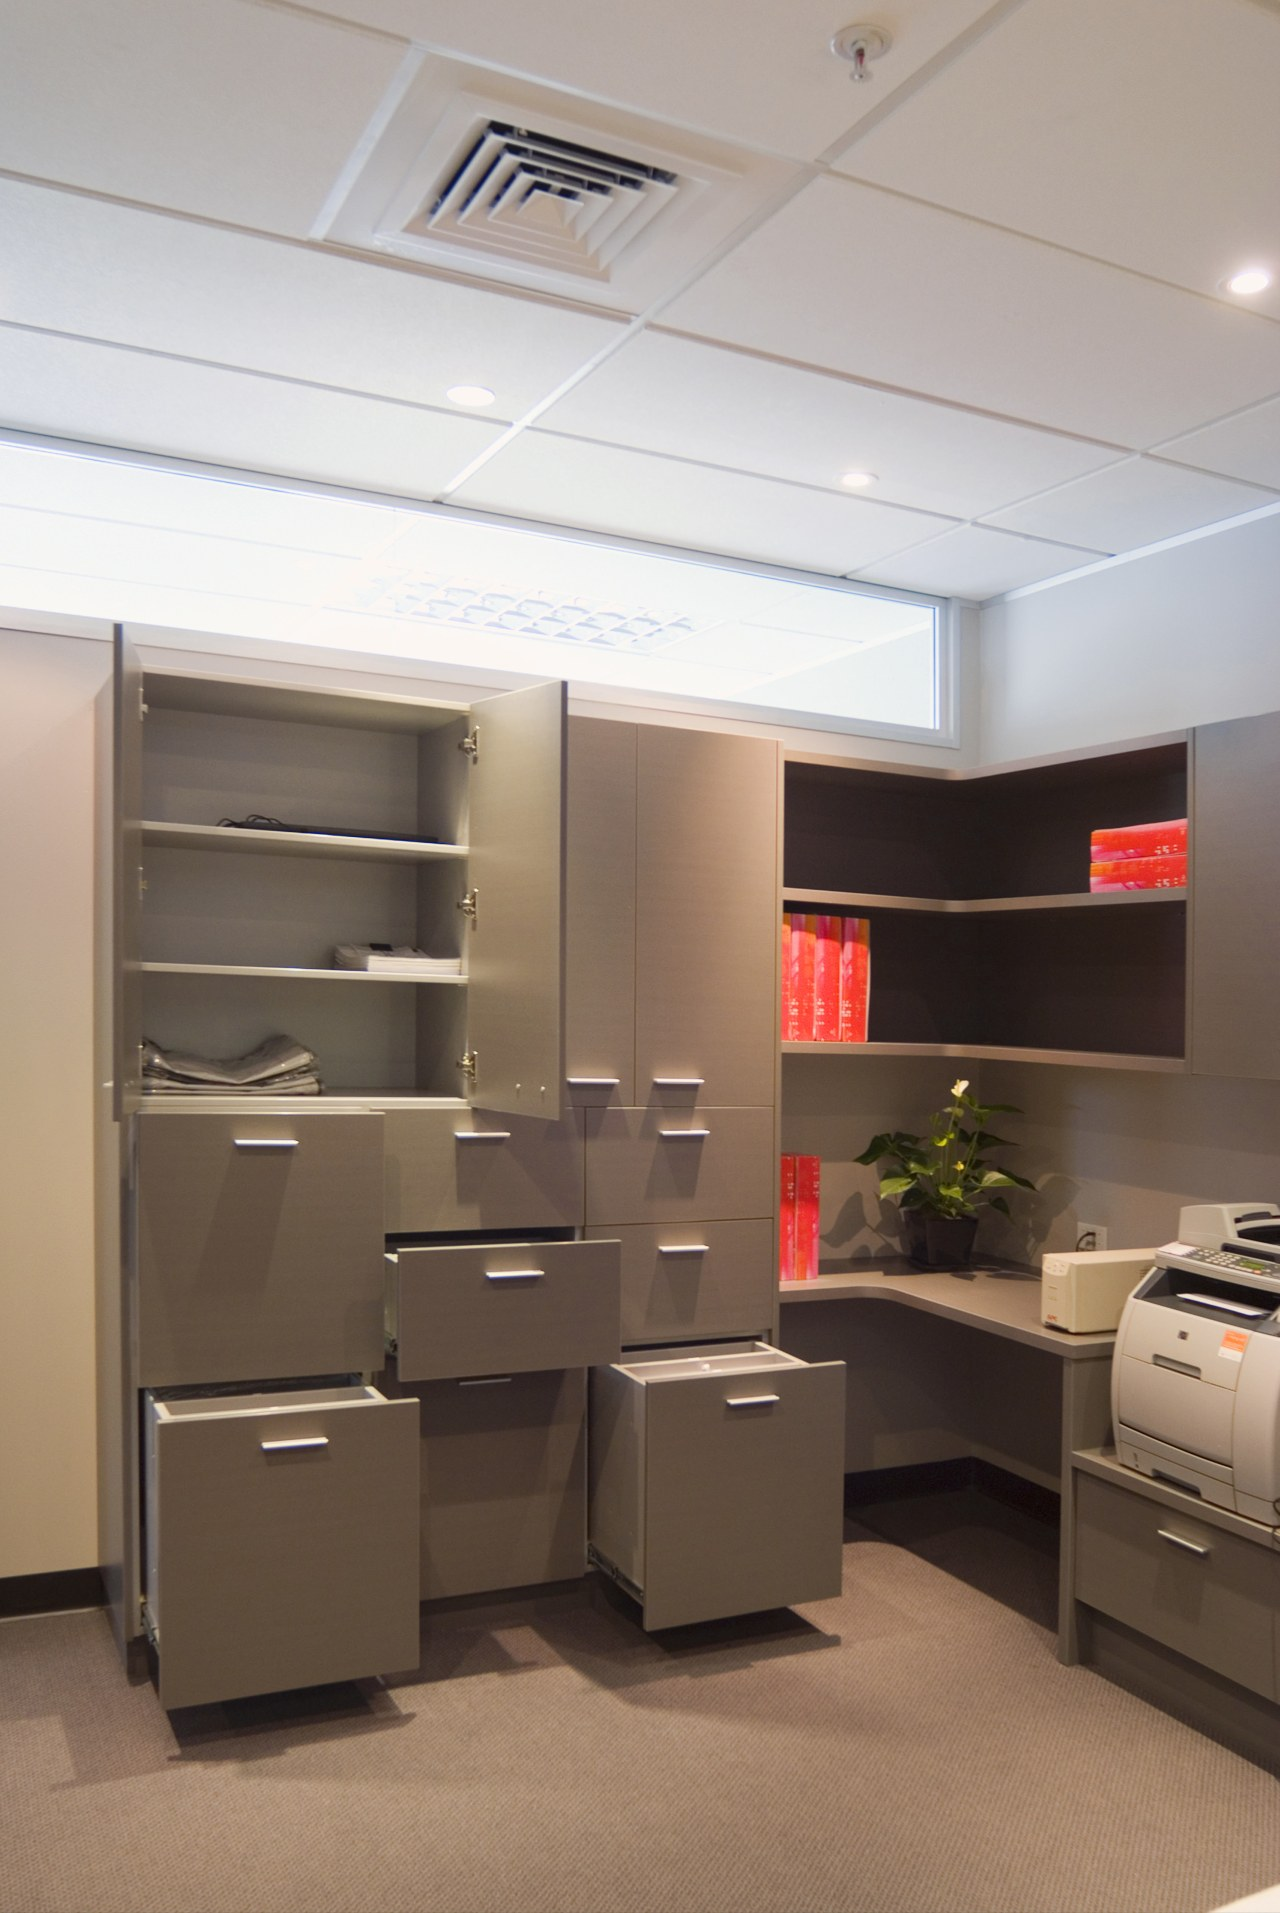 The built in cabinets feature Laminex low pressure ceiling, furniture, interior design, office, product design, brown